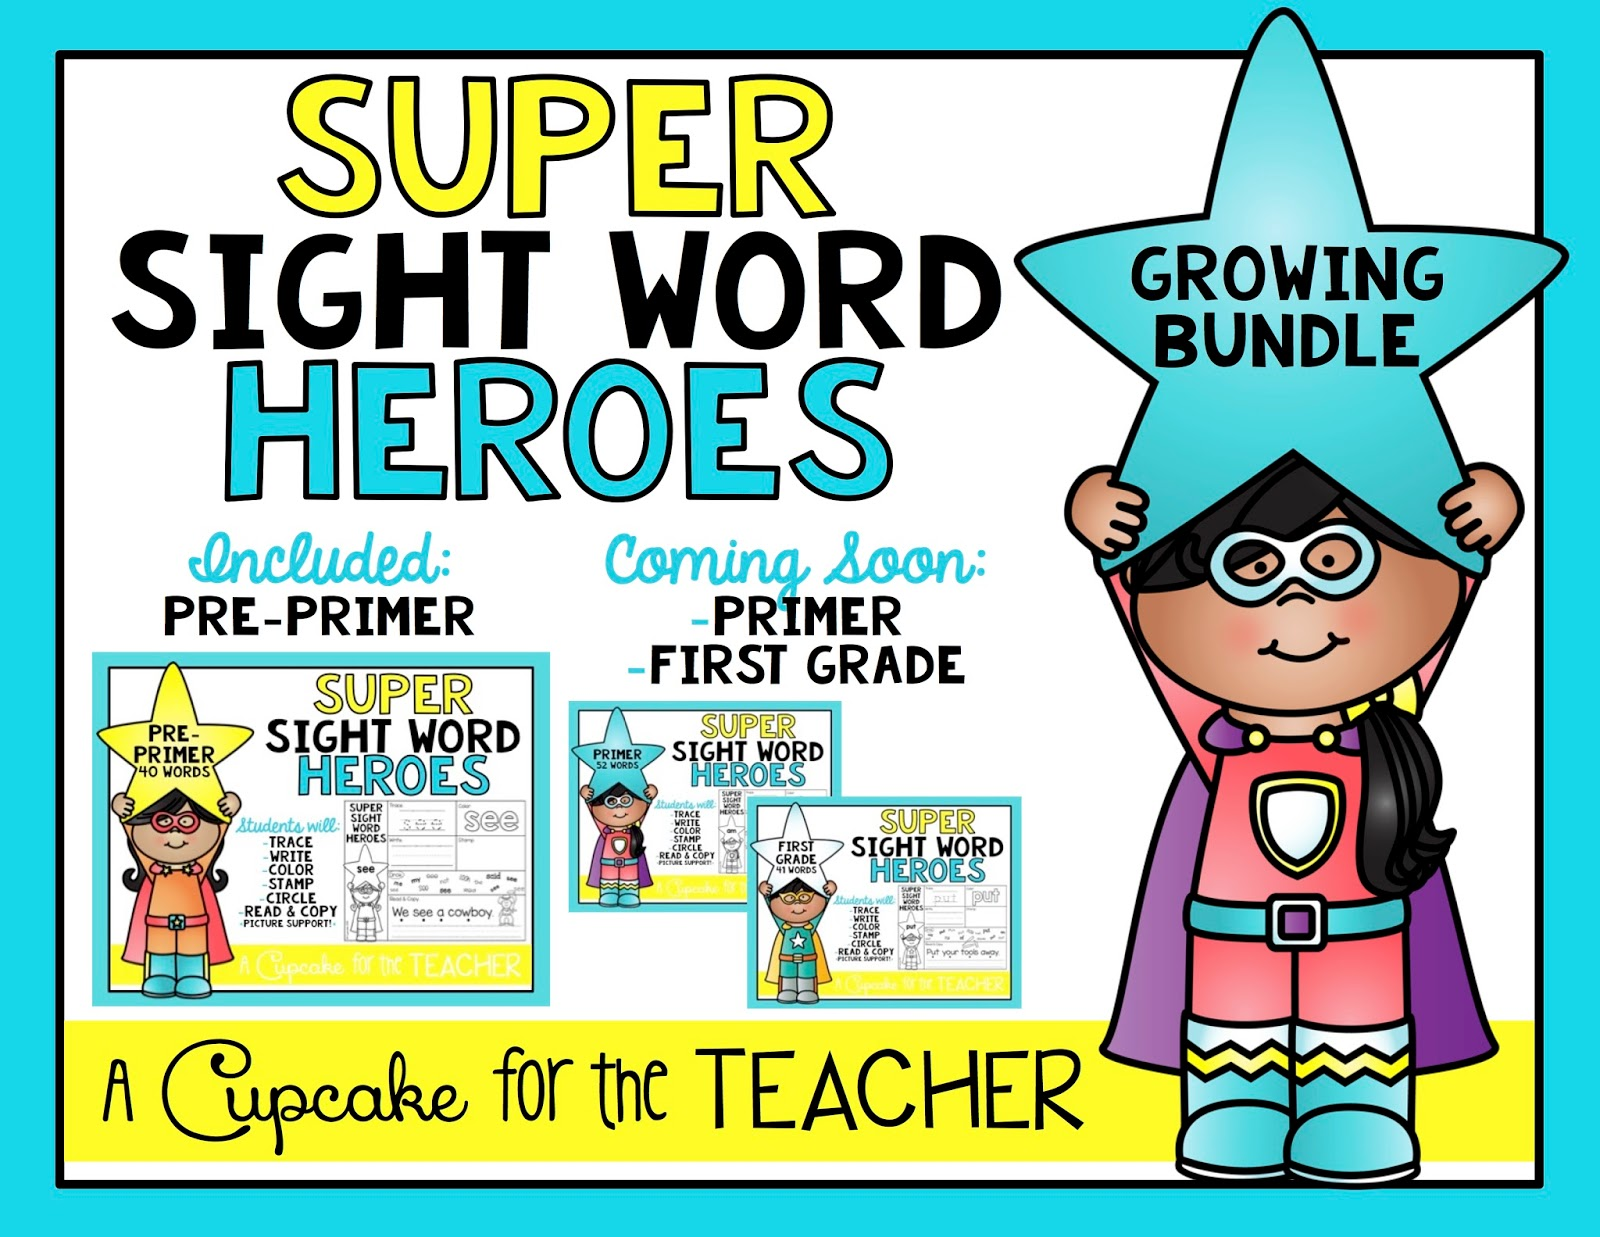 Super Sight Word Heroes - A Cupcake for the Teacher